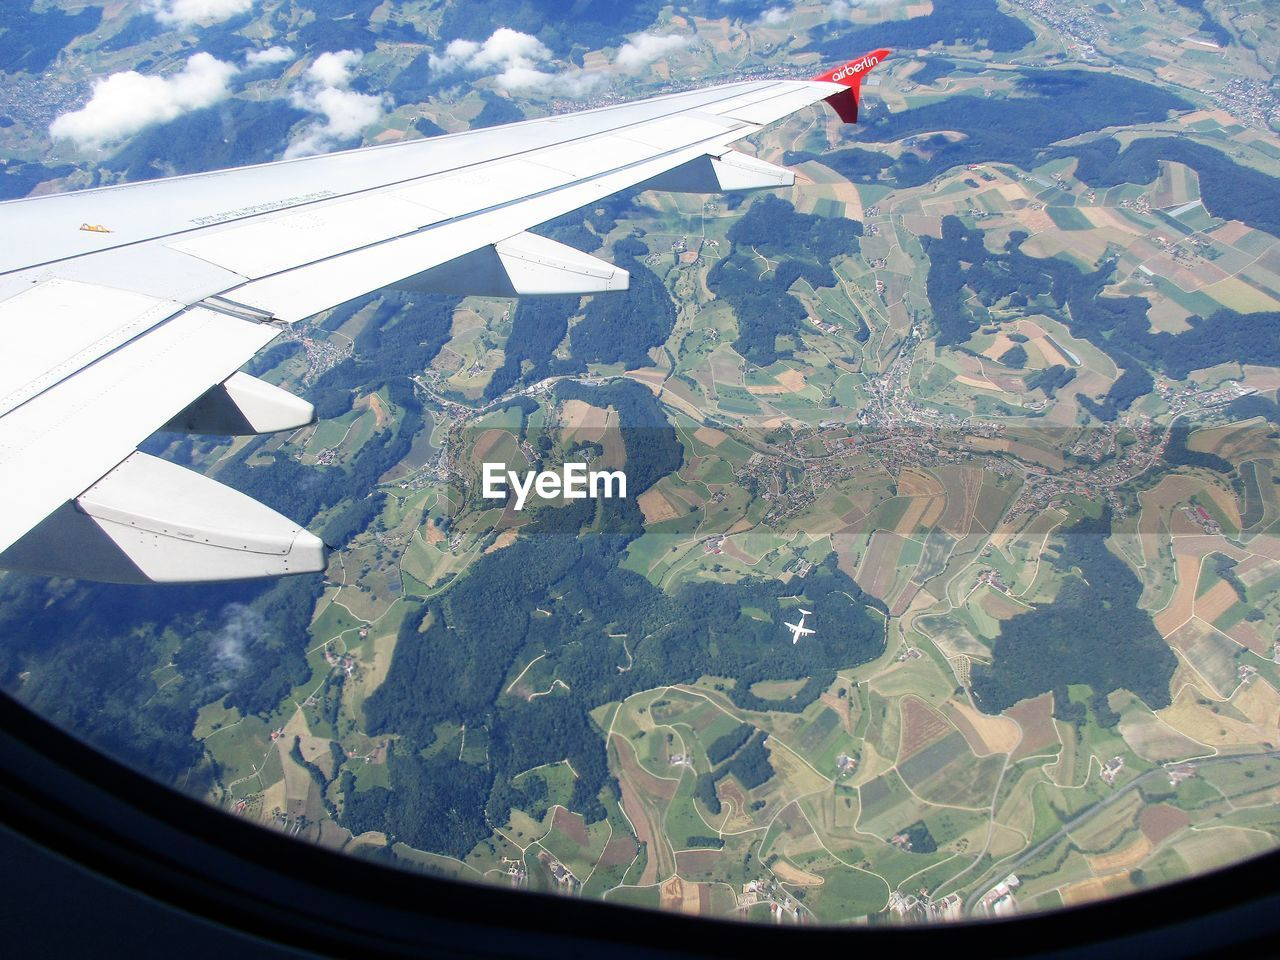 airplane, flying, aerial view, transportation, journey, aircraft wing, air vehicle, mid-air, landscape, travel, mode of transport, vehicle part, airplane wing, scenics, nature, window, beauty in nature, day, view into land, no people, patchwork landscape, agriculture, outdoors, mountain, sky